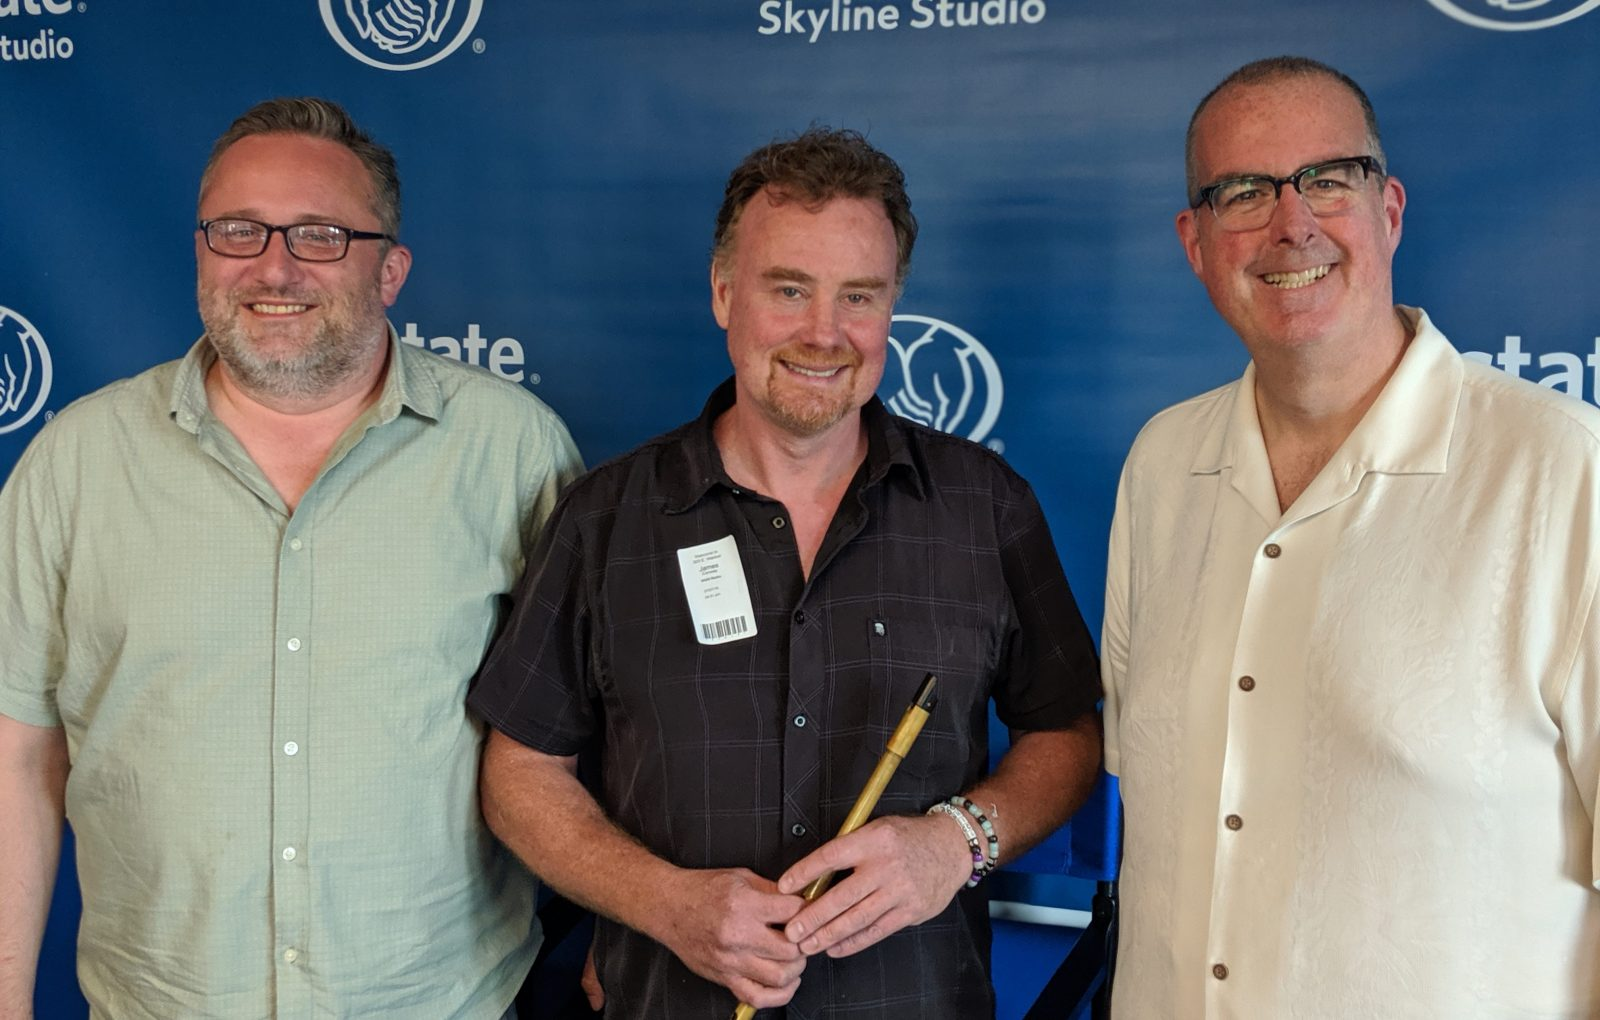 From left to right: Mark Piekarz, James Conway, and Brian Noonan